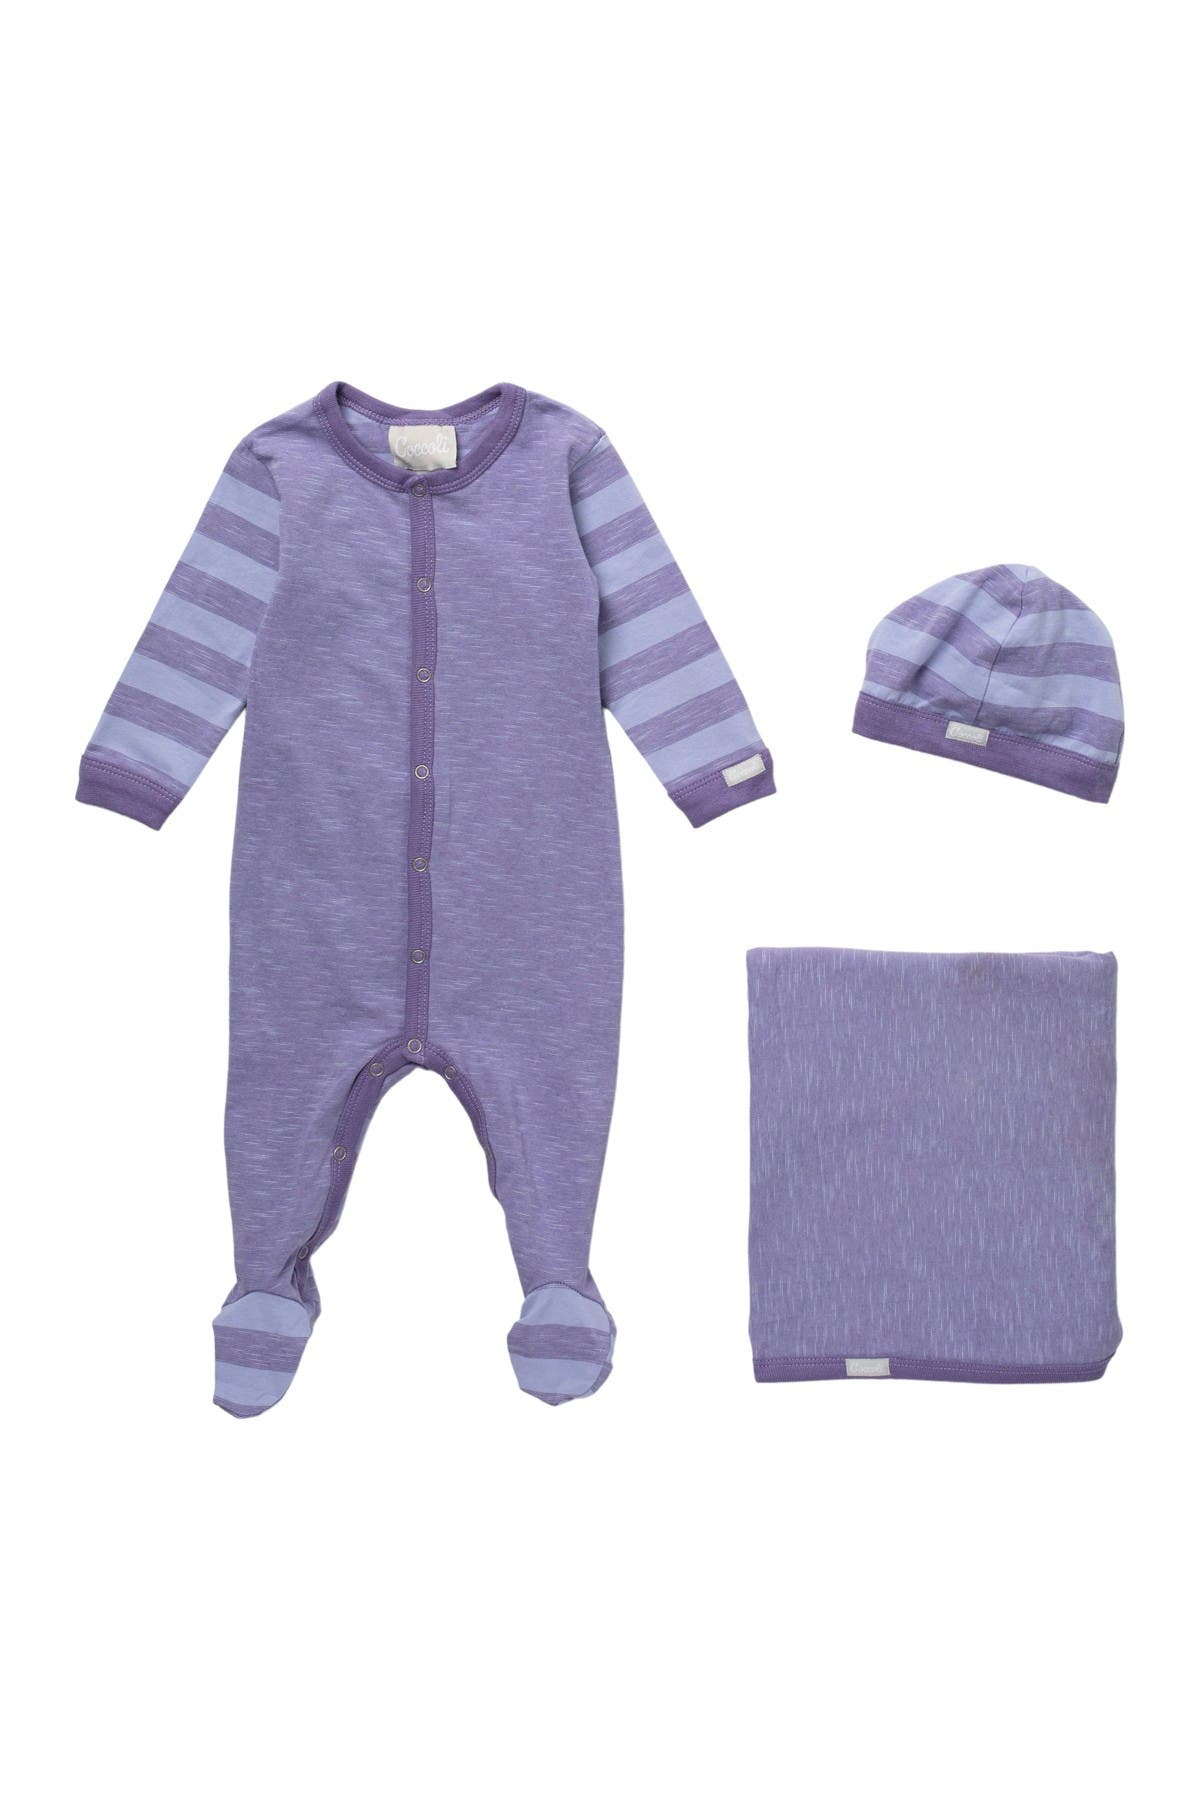 Image of Coccoli Cotton Footie, Cap & Blanket Set